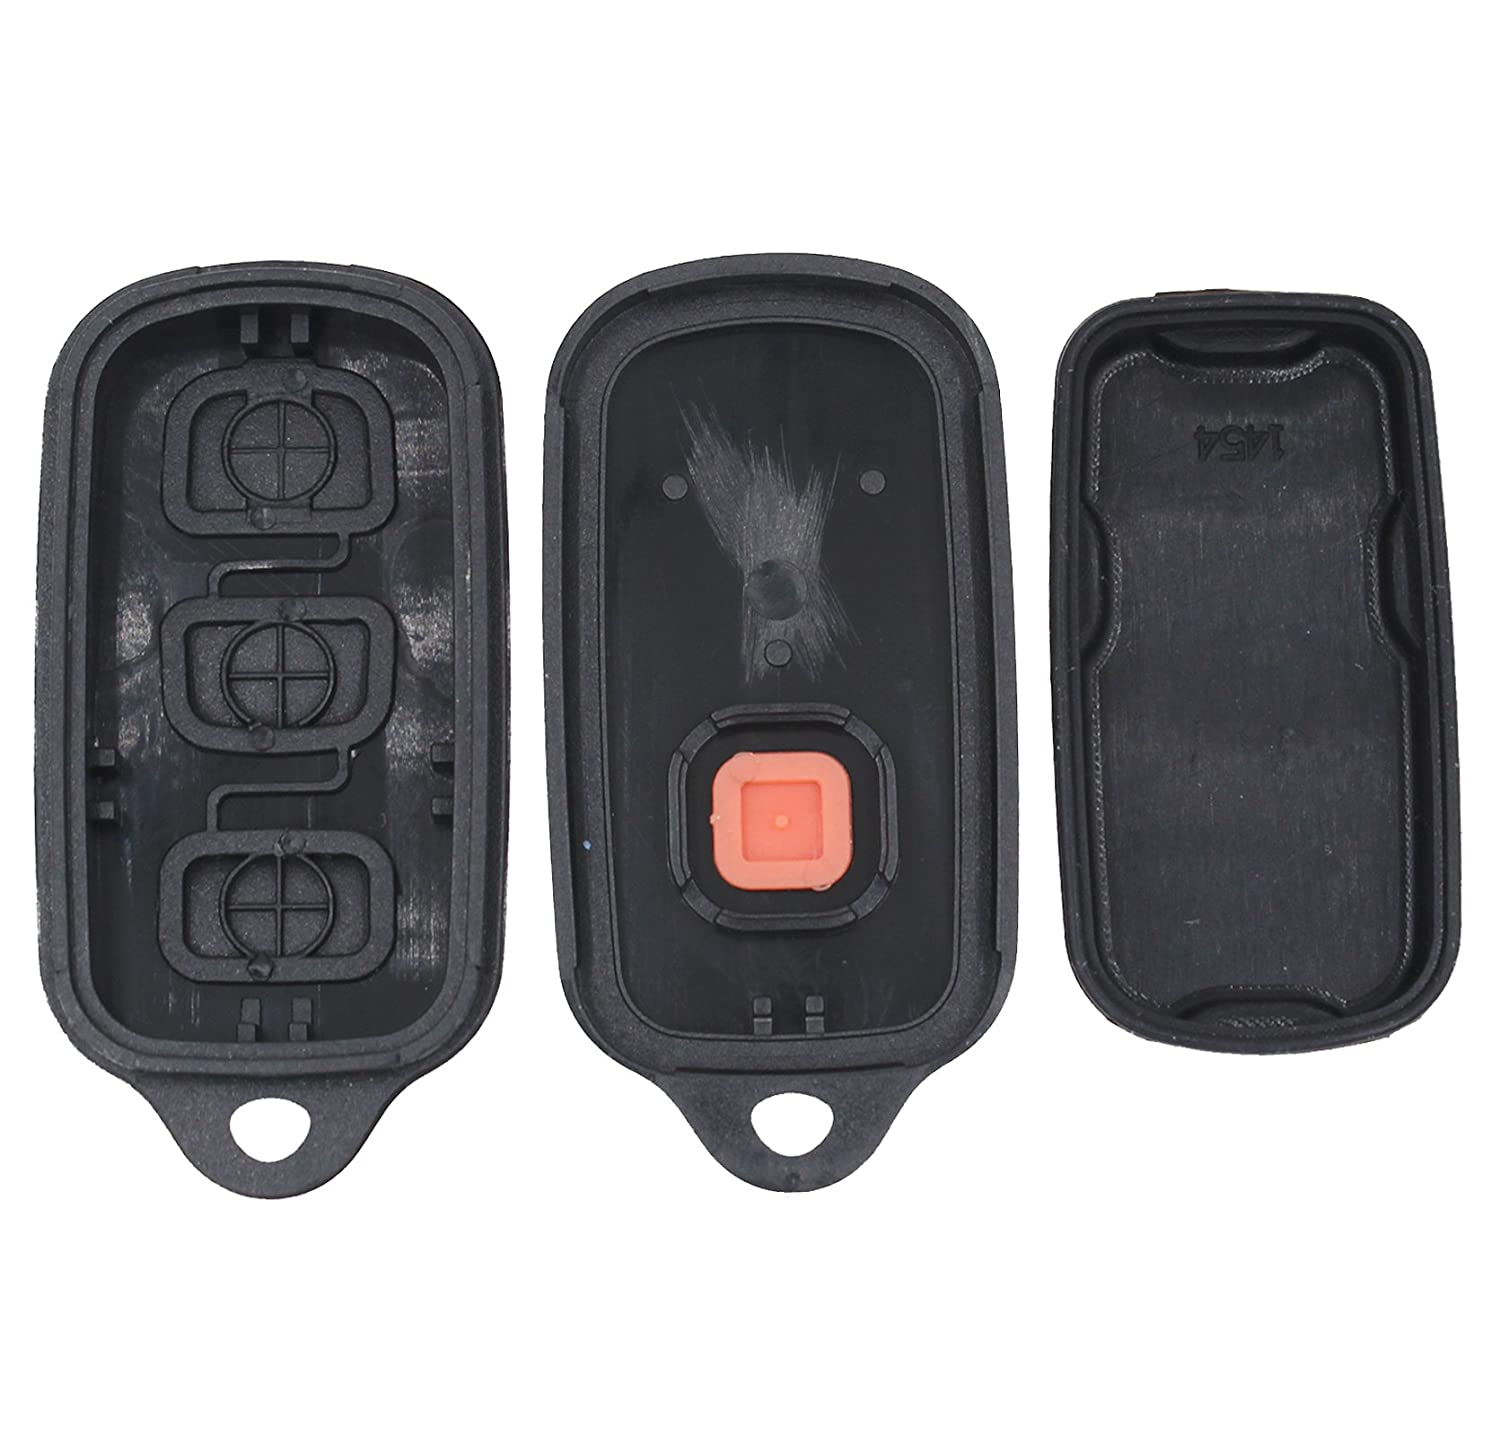 1 Panic 4 Button Remote Keyless Fob Case for Toyota Avalon 1998-2004 Auto Key Fob DM-FE-XM32 New 3